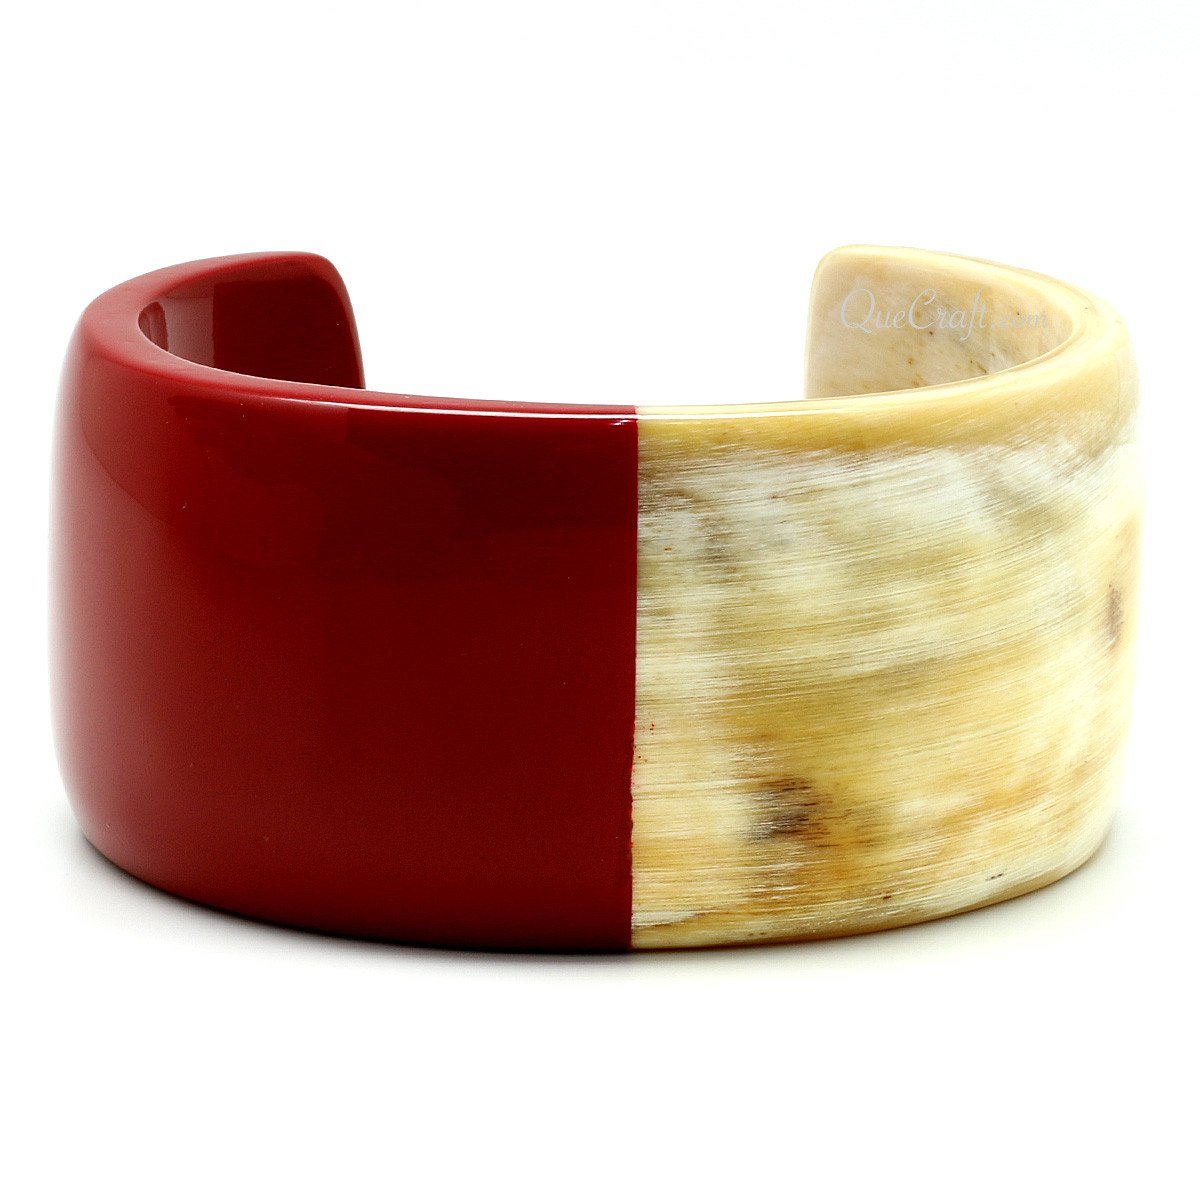 Horn & Lacquer Cuff Bracelet #6749 - HORN.JEWELRY